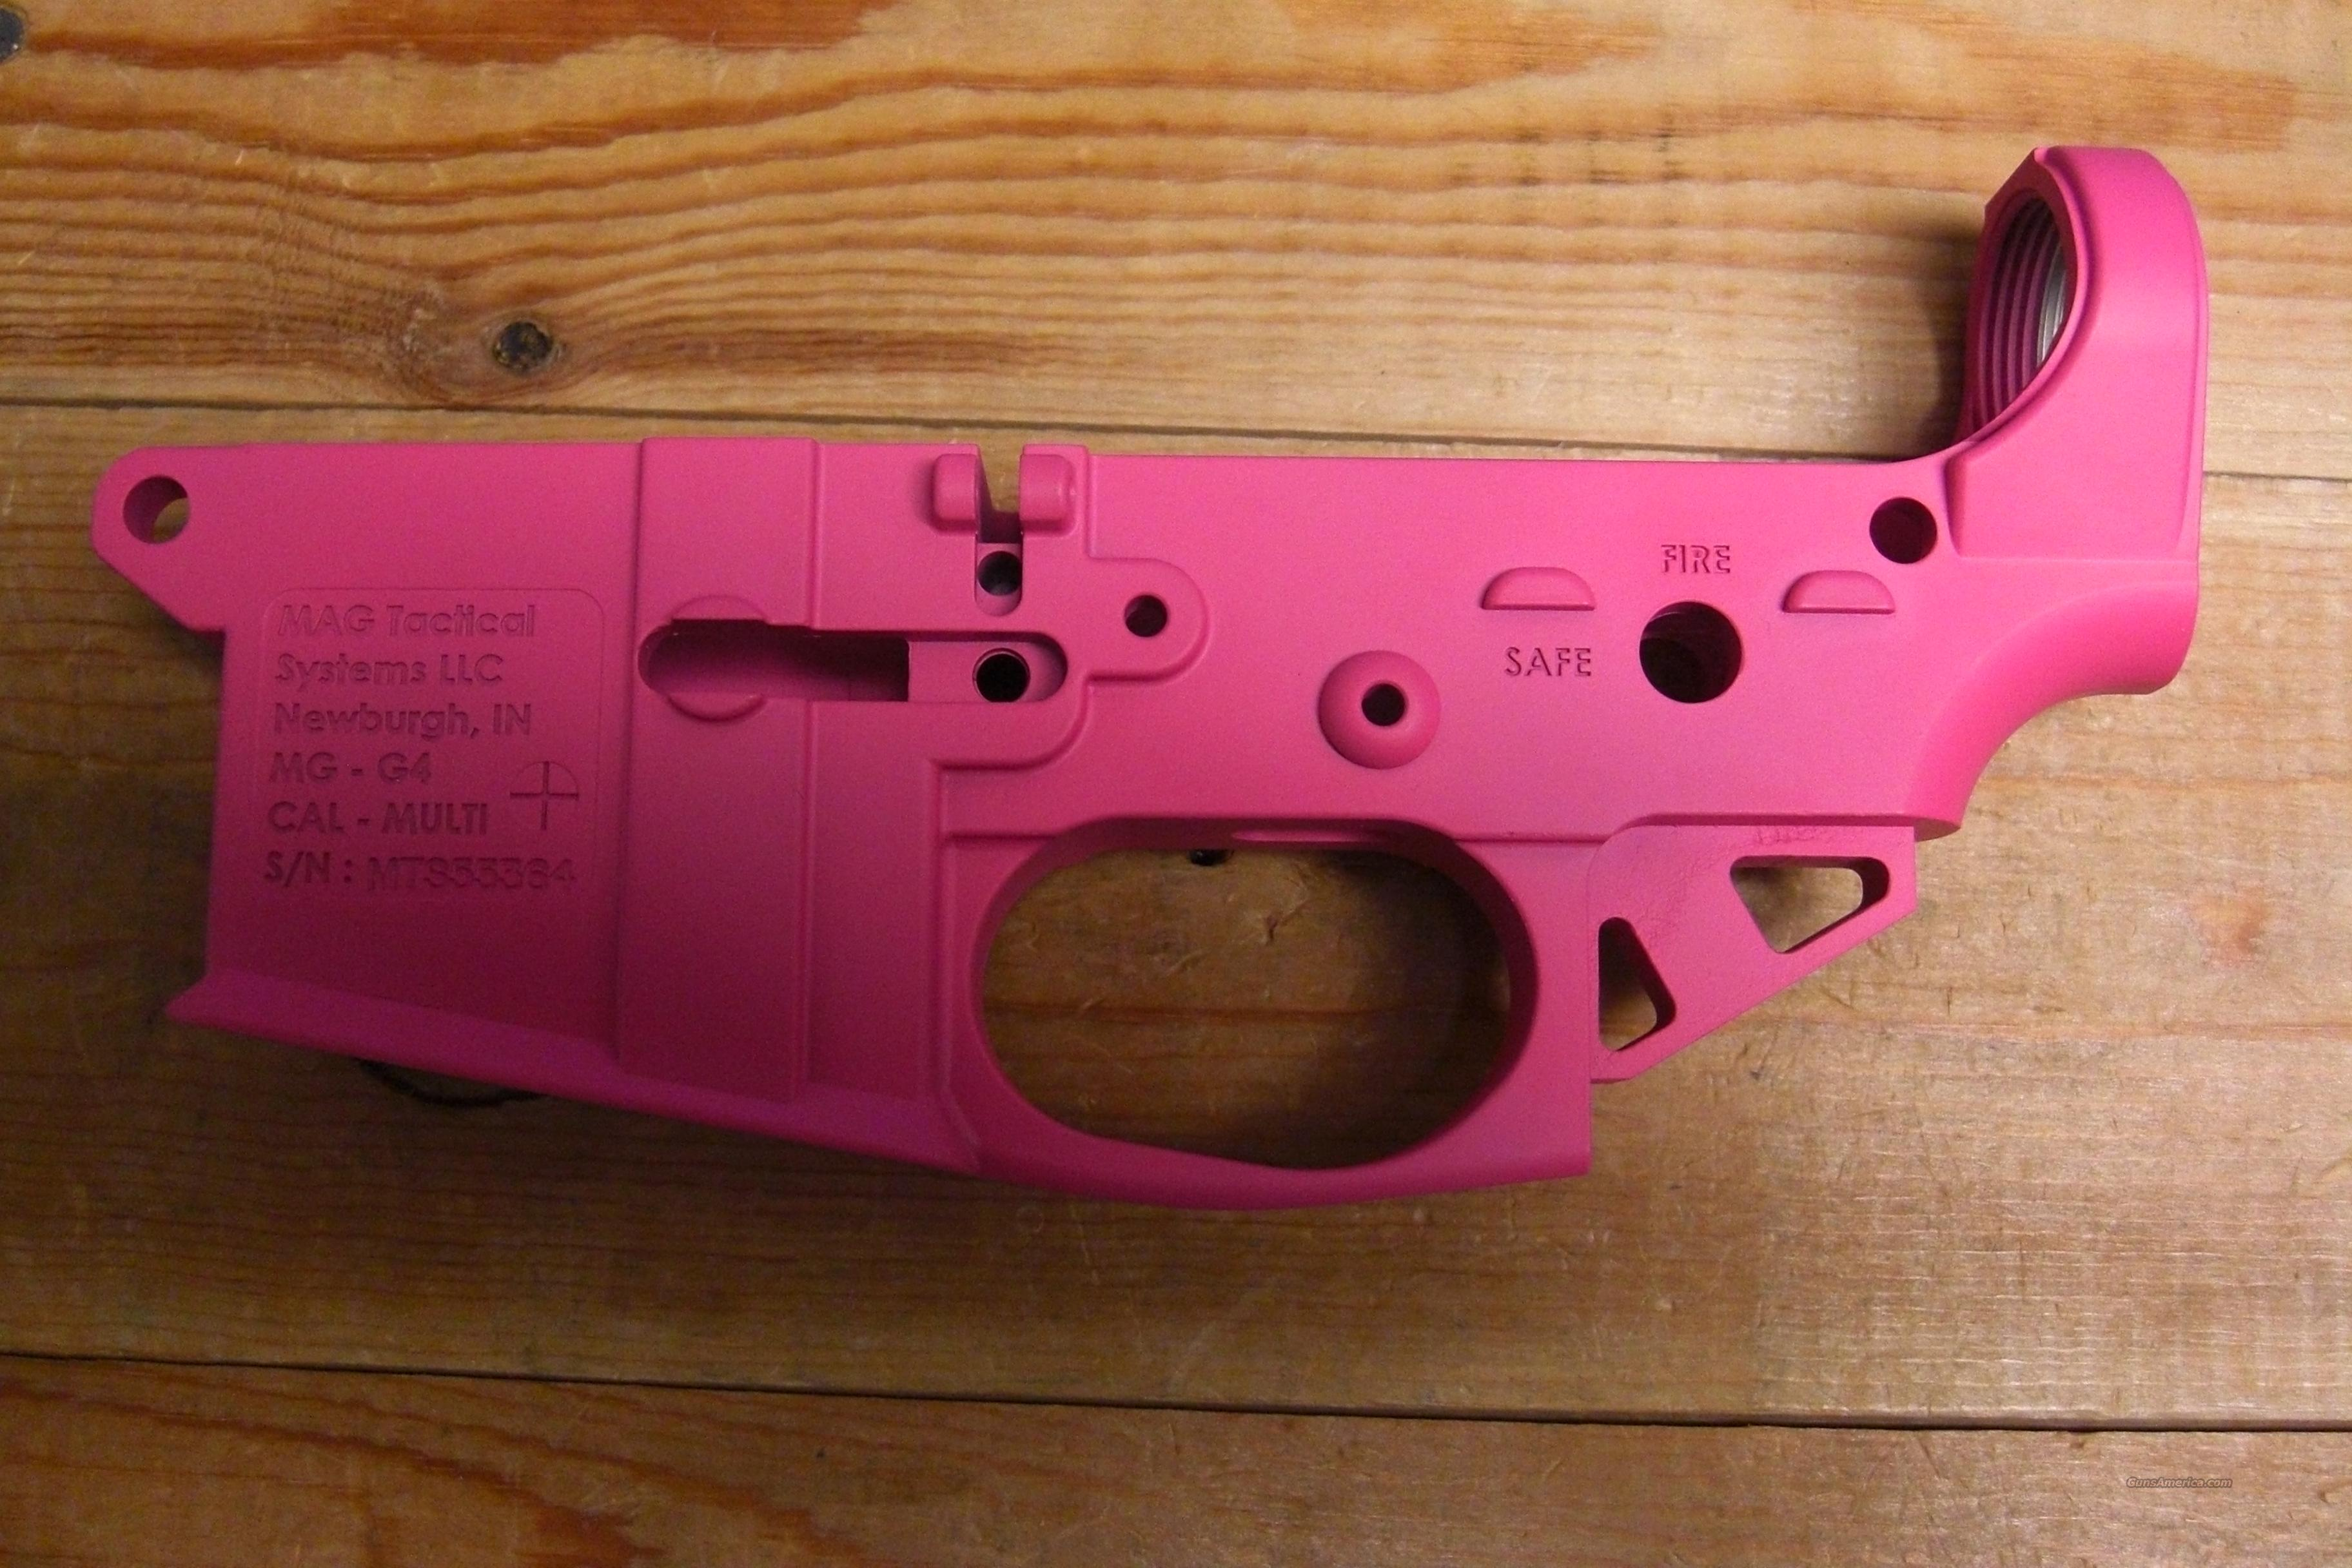 MAG Tactical  Hot Pink receiver  Guns > Rifles > AR-15 Rifles - Small Manufacturers > Lower Only